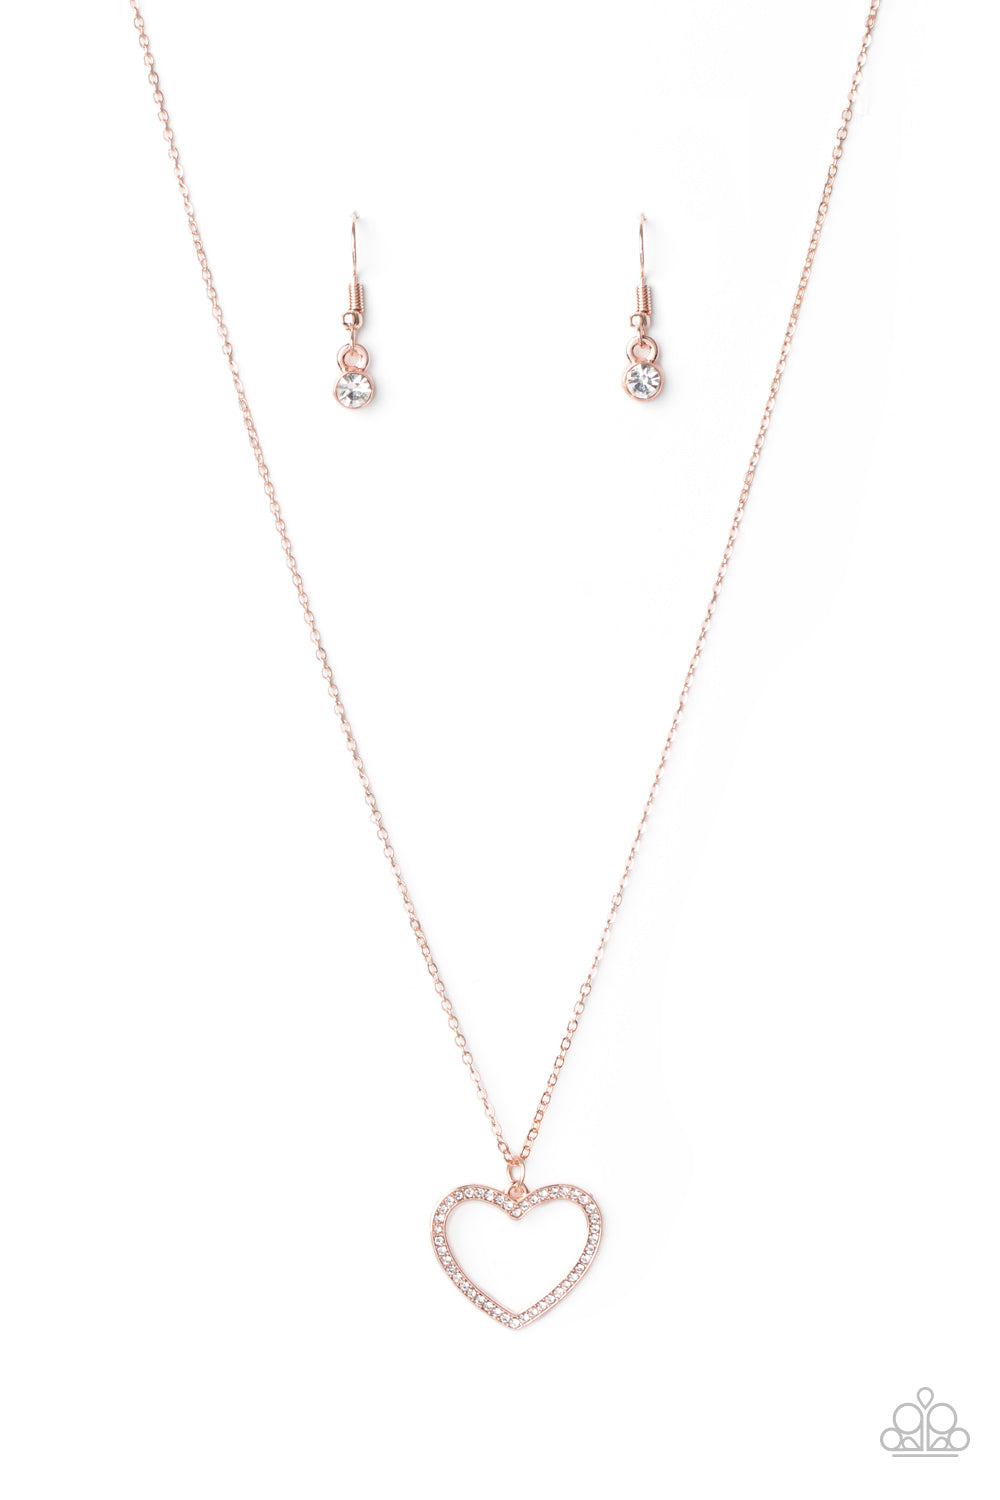 five-dollar-jewelry-glow-by-heart-rose-gold-paparazzi-accessories